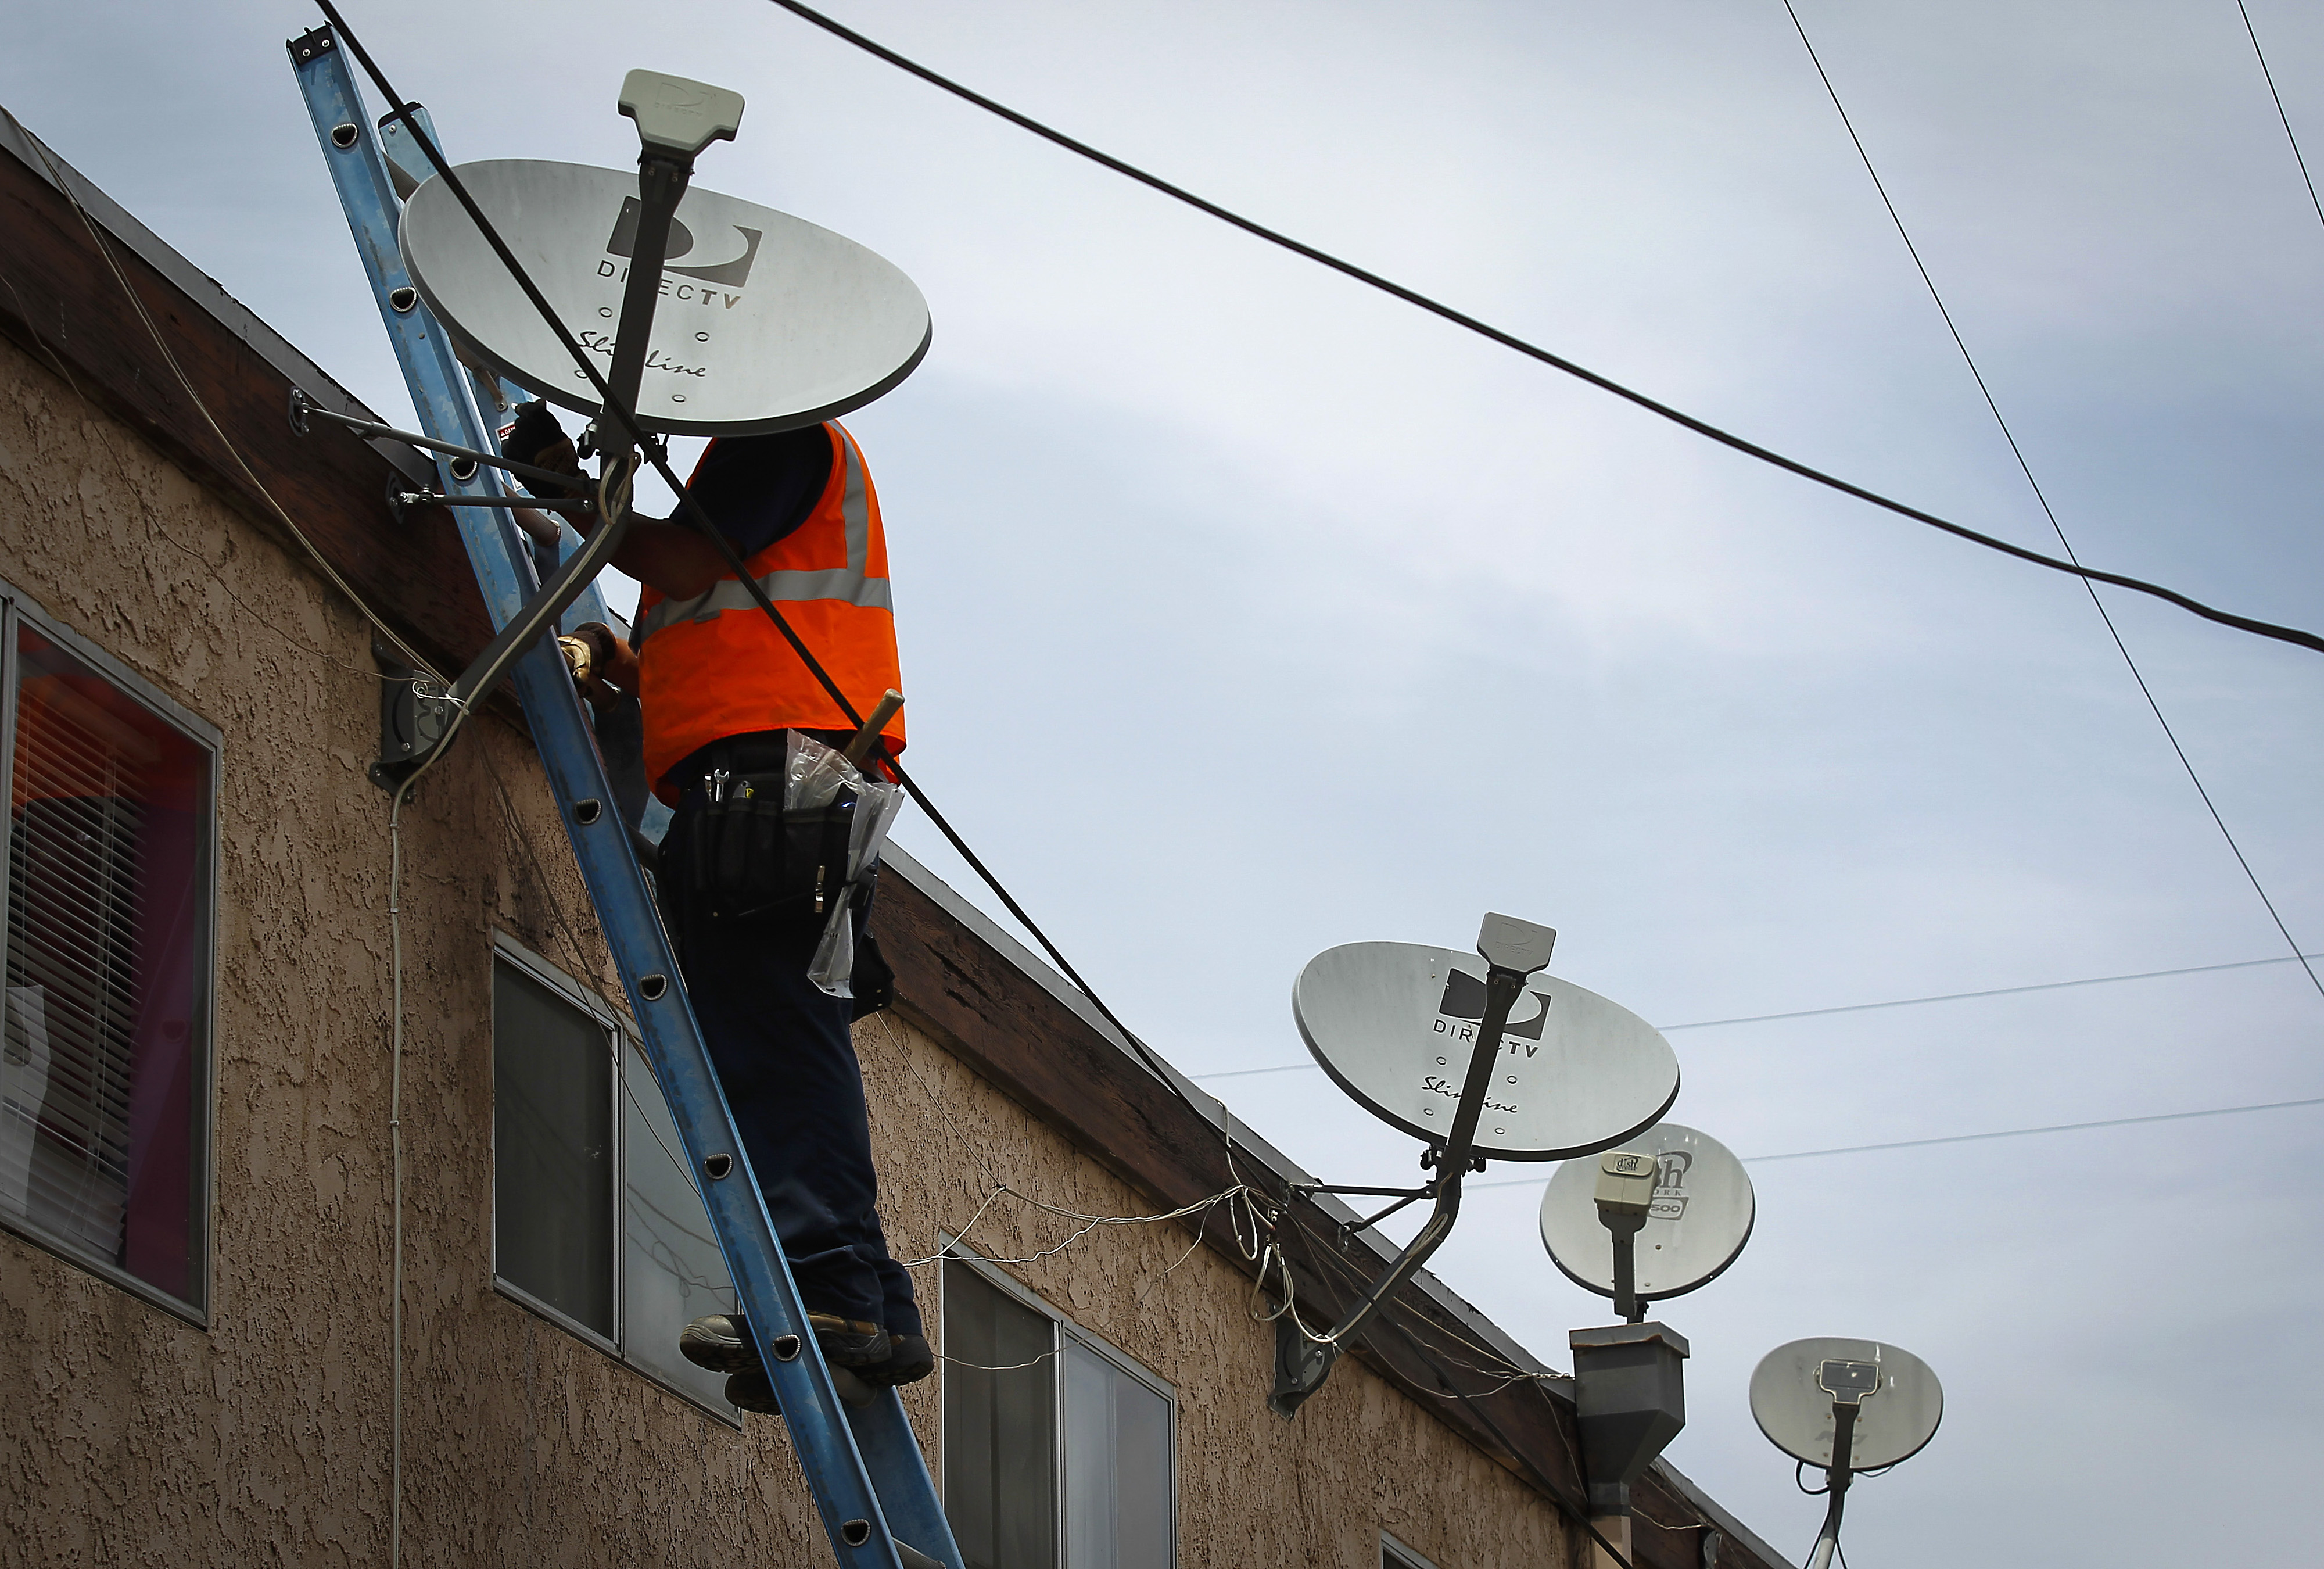 How To Get Your Satellite Company To Pay For Damages It Made Money